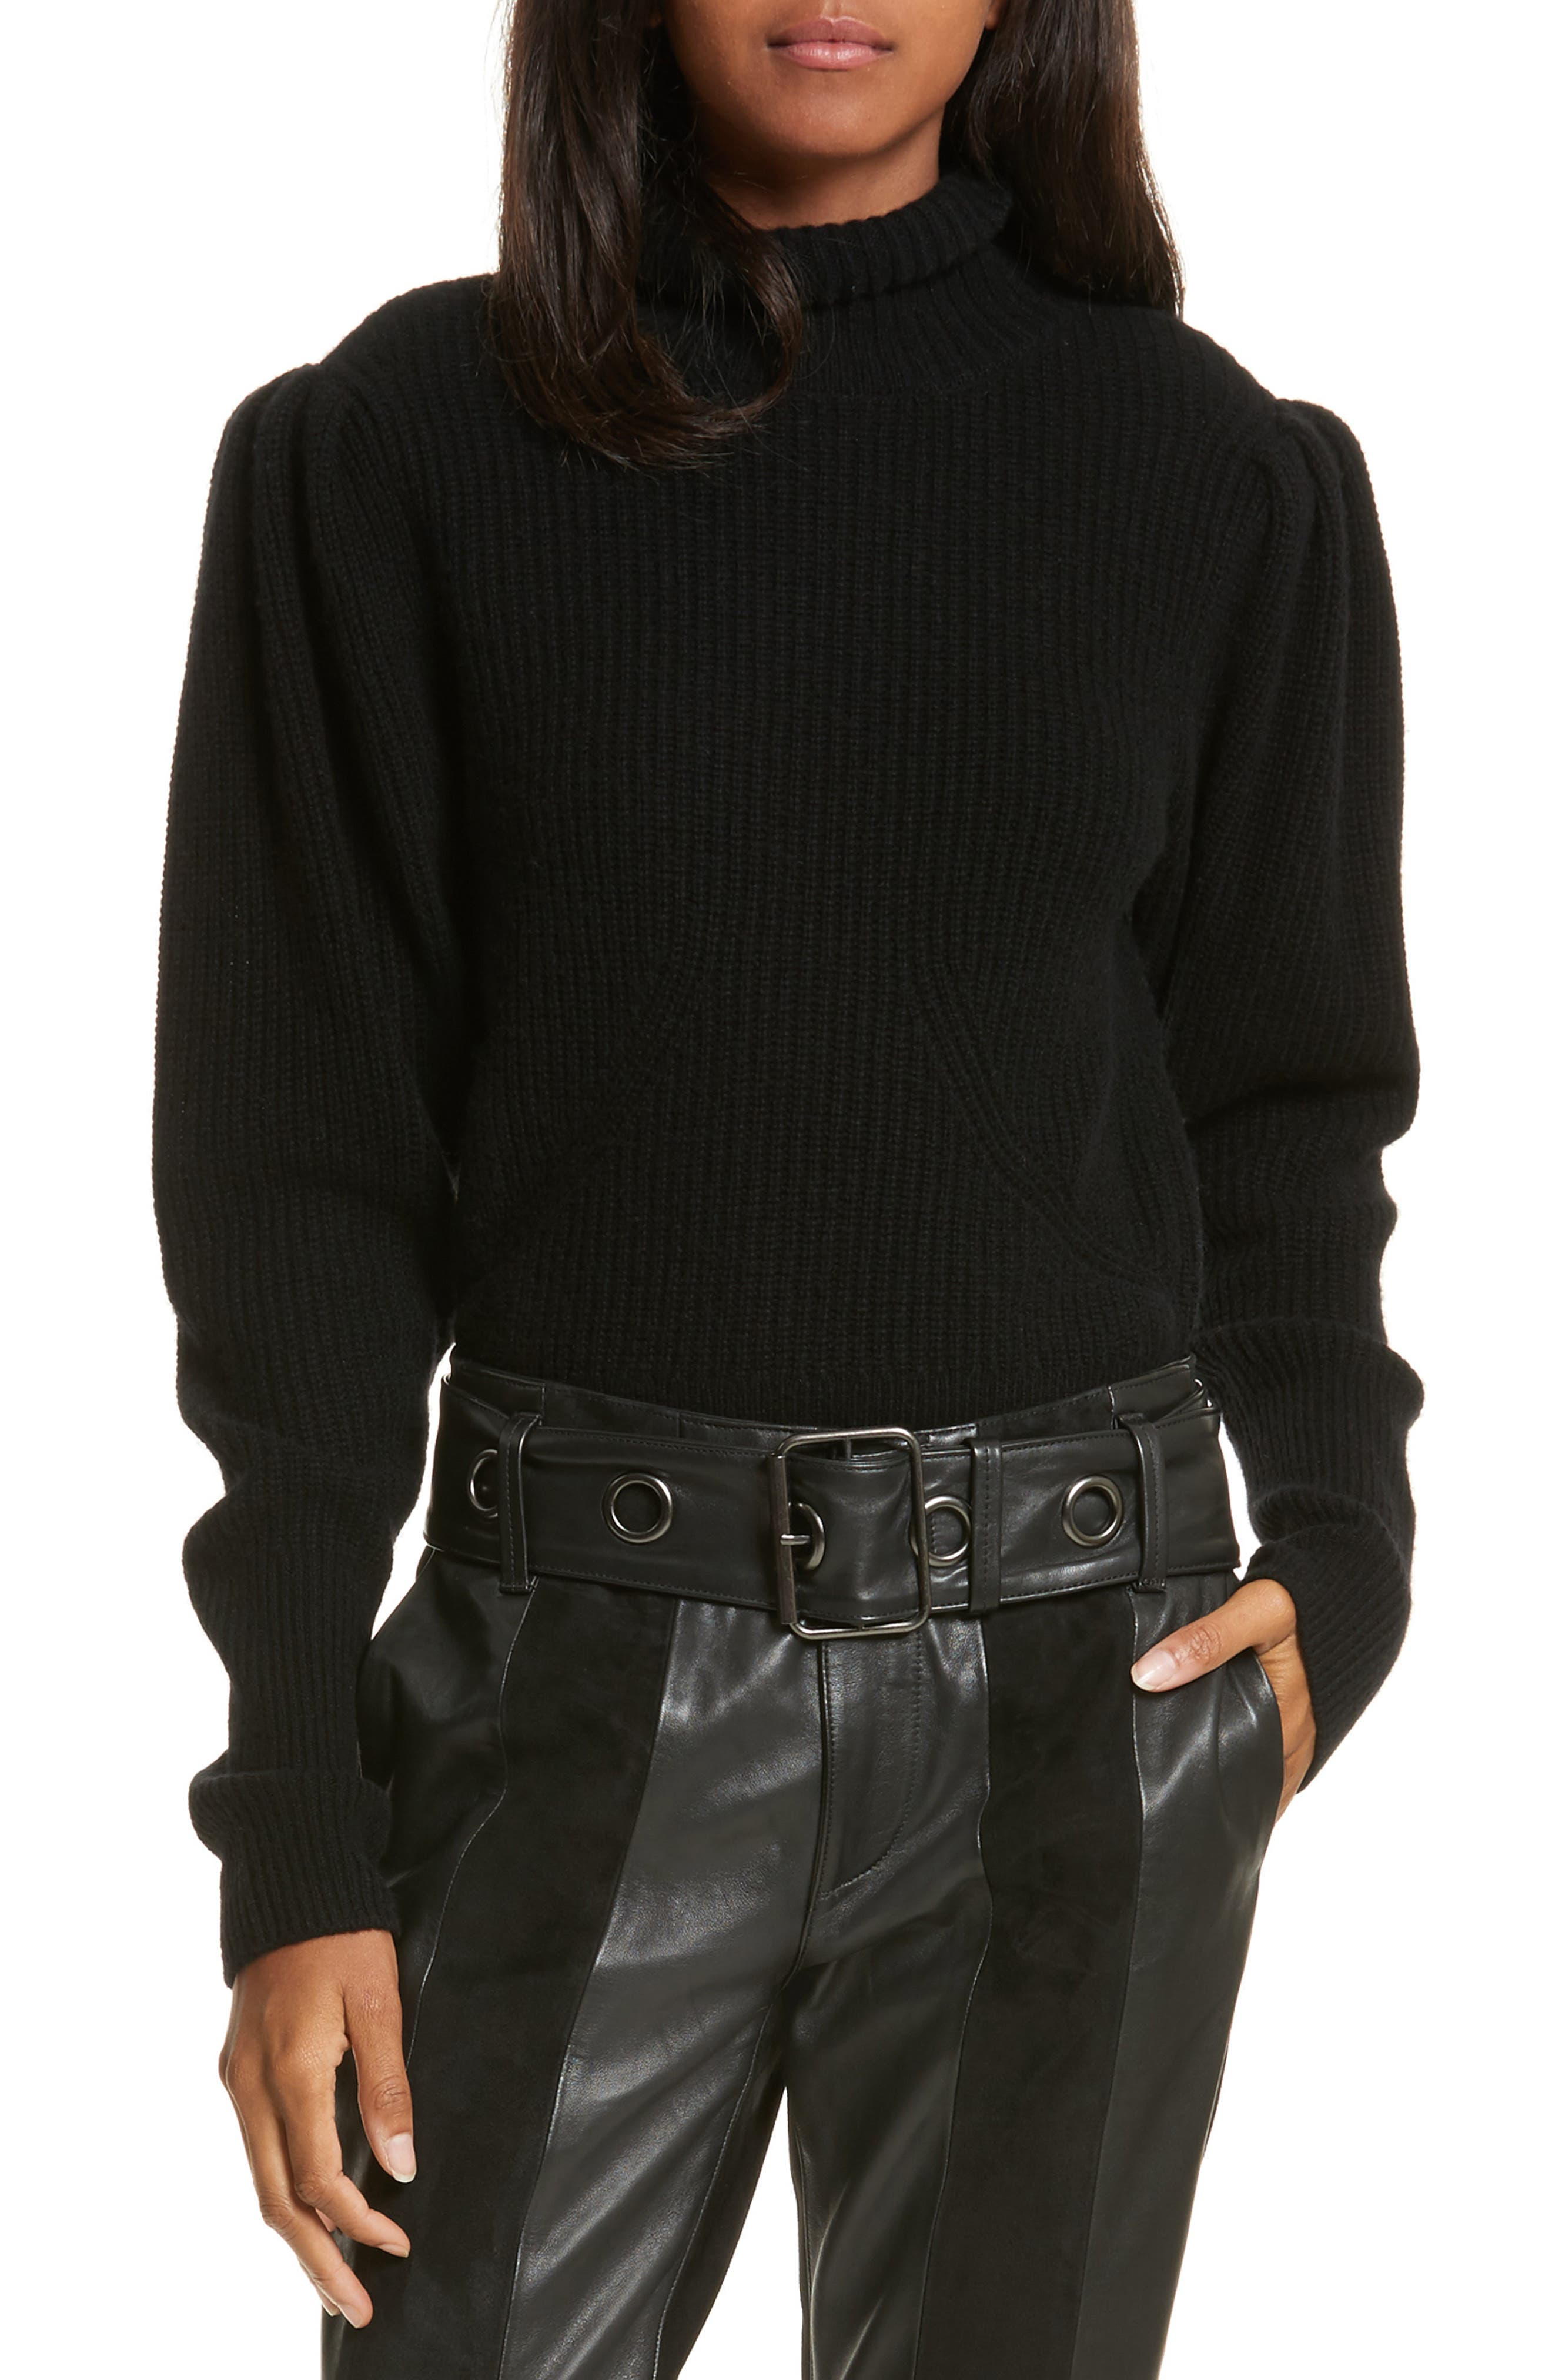 Alternate Image 1 Selected - FRAME Wool & Cashmere Puff Sleeve Turtleneck Sweater